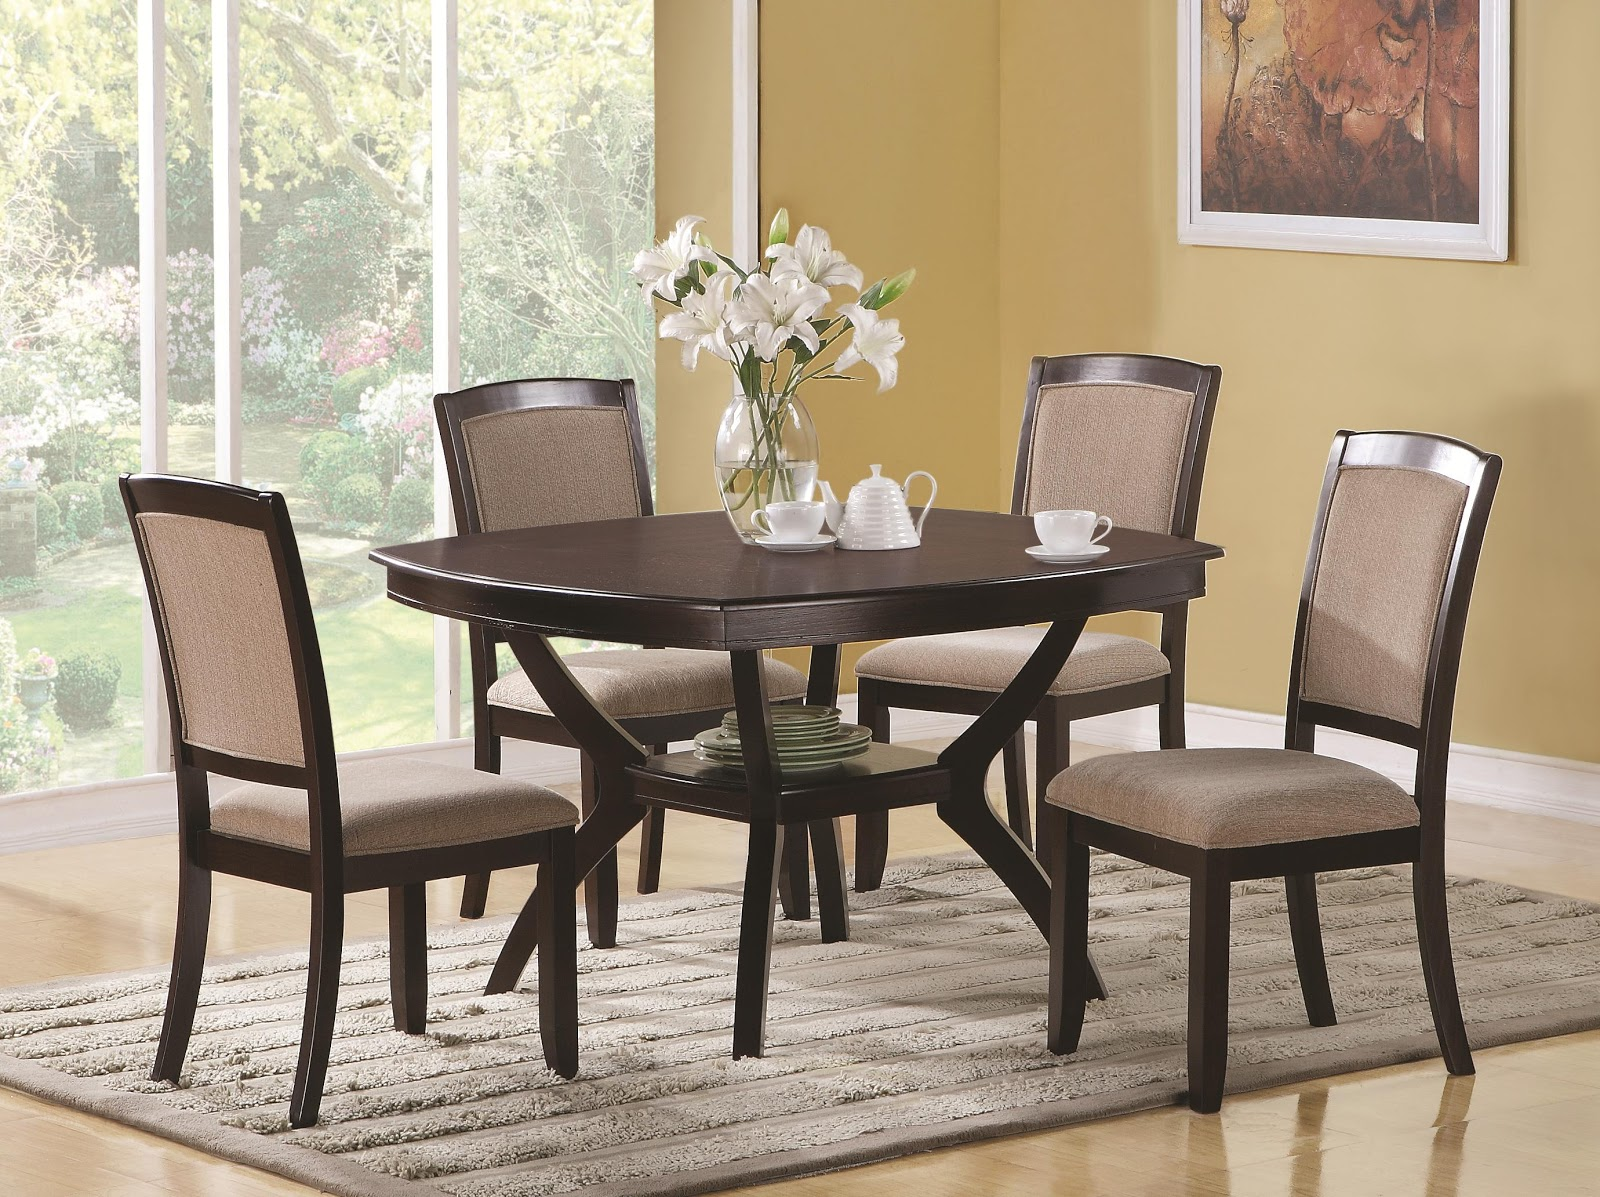 Round dining room sets dining room unique dinette Dining room sets